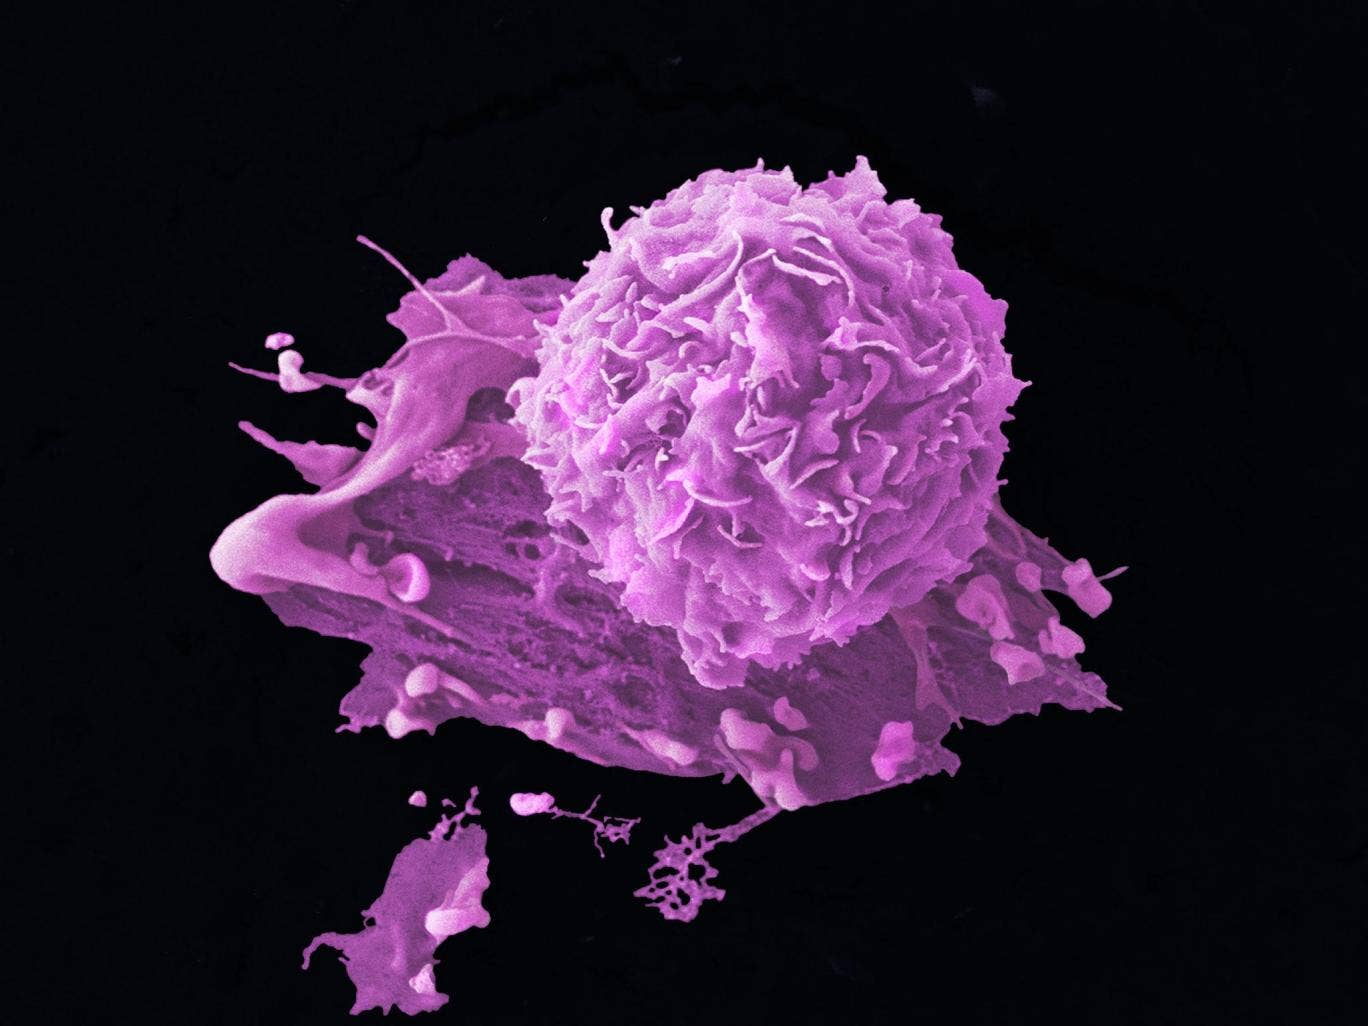 The breast cancer cell - women with breast cancer will have their DNA scanned by scientists in order to better understand the genetic cause of cancer in individuals